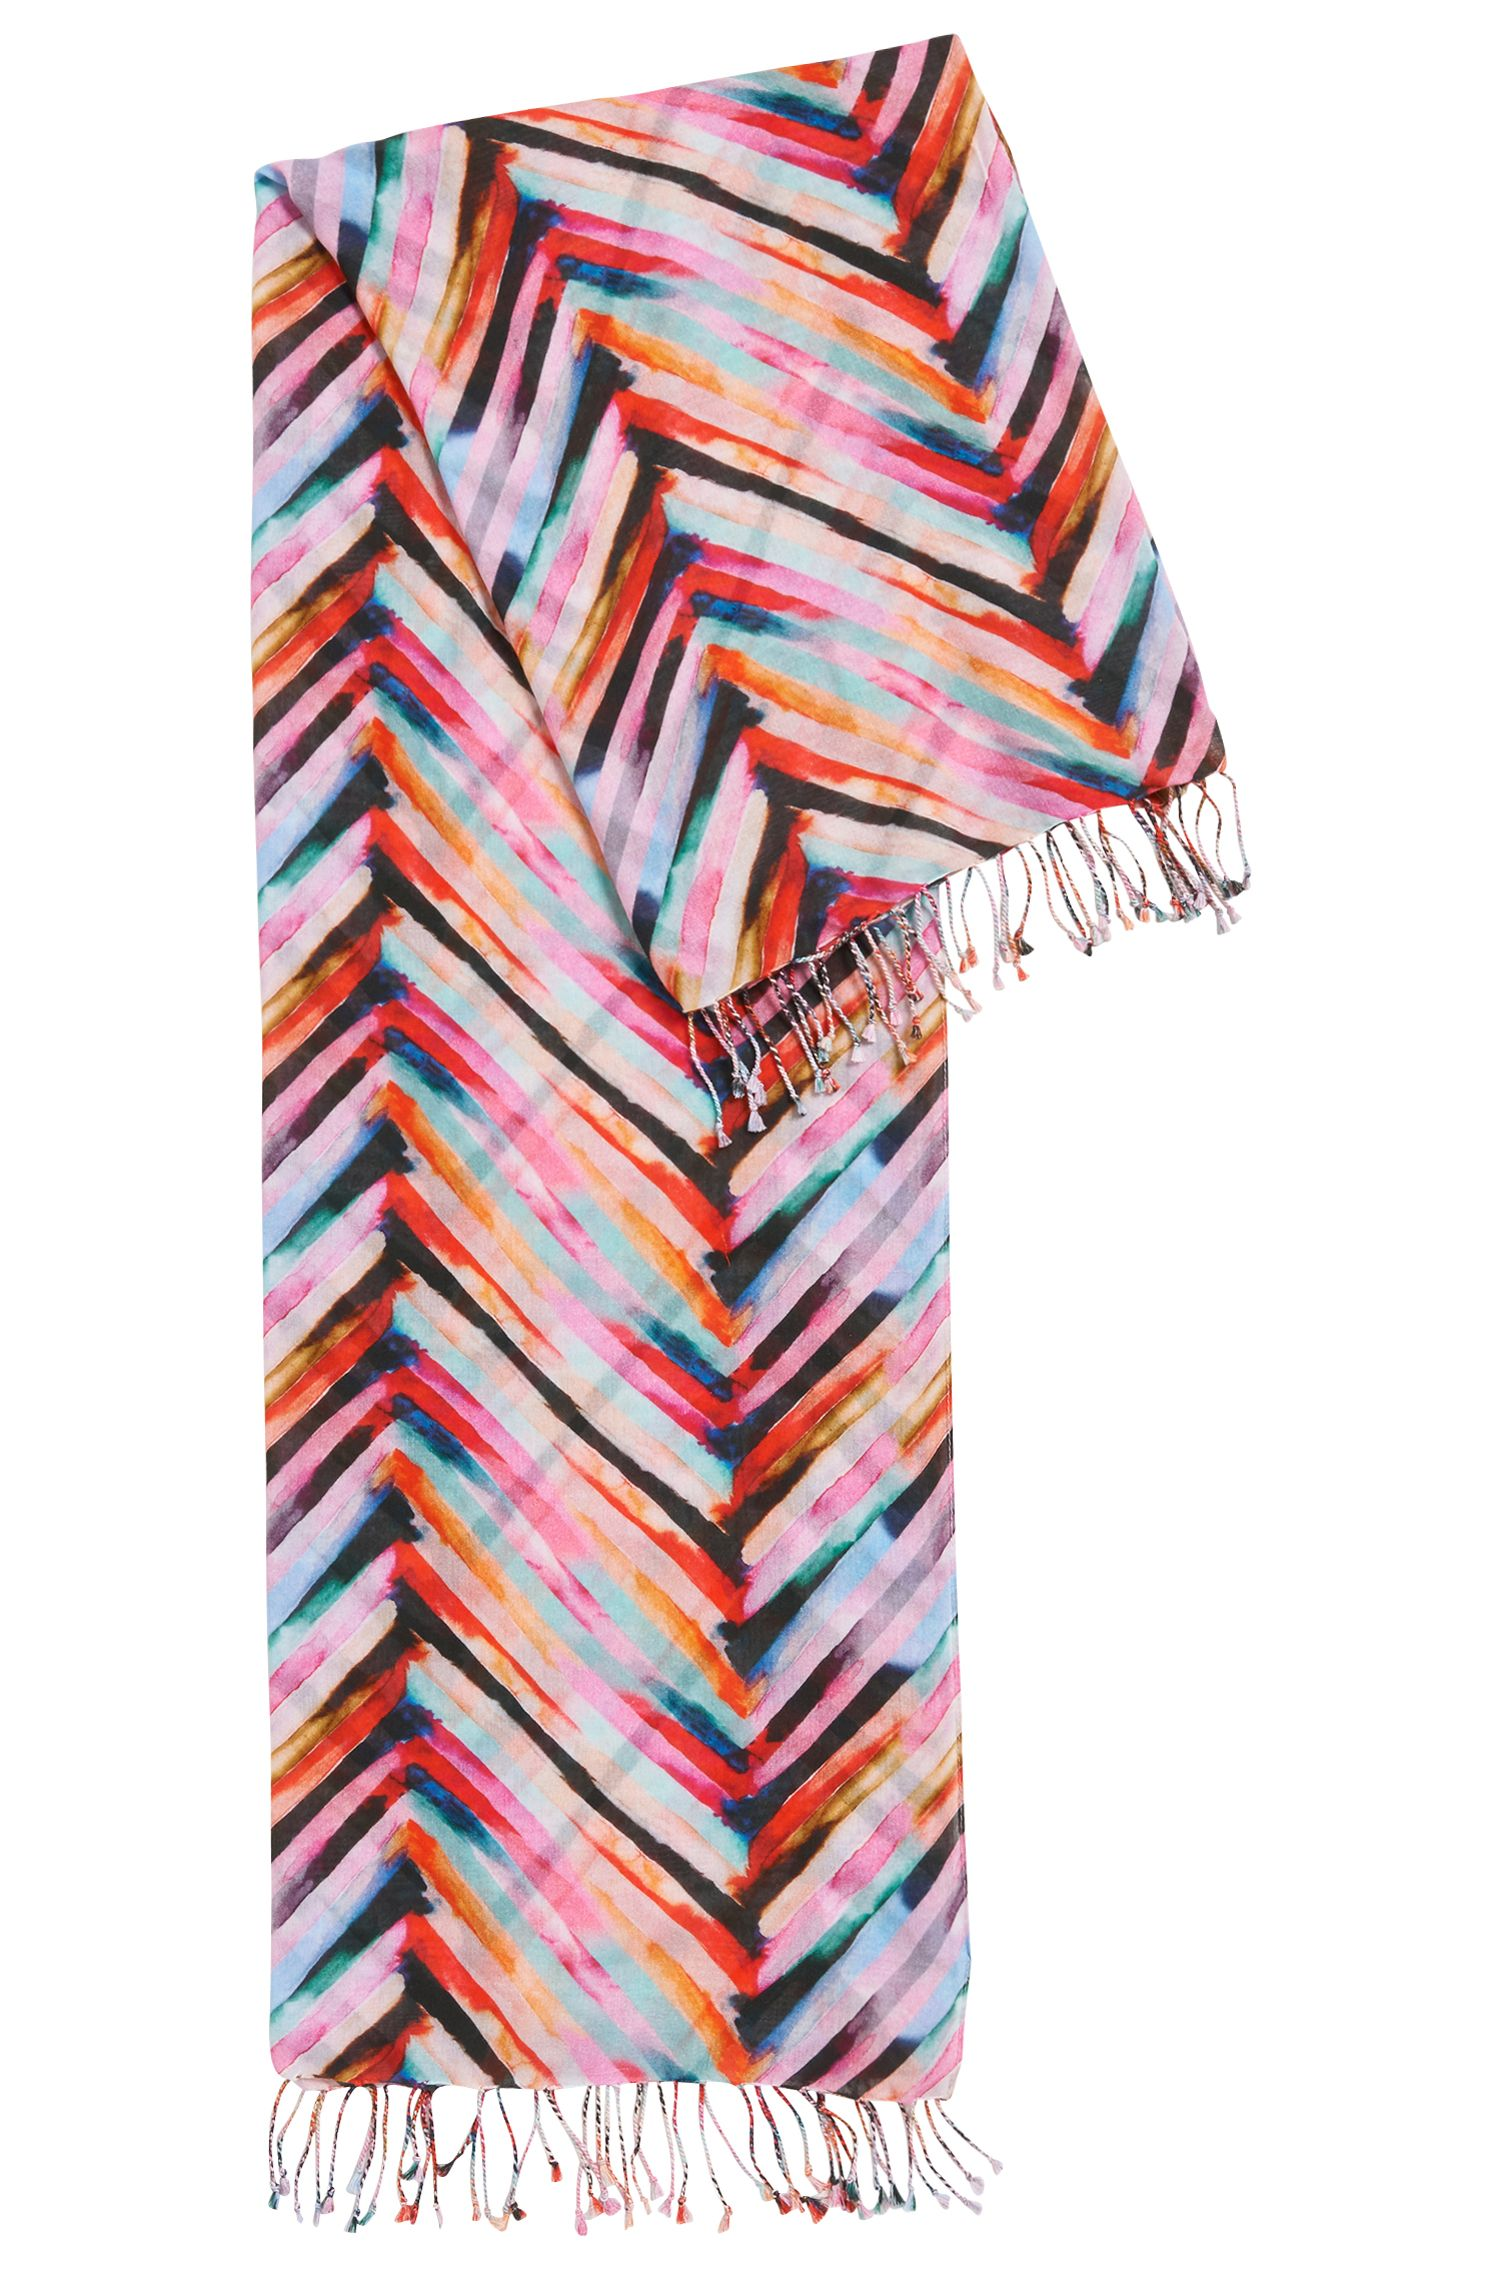 Multi-coloured striped scarf in a lightweight cotton blend